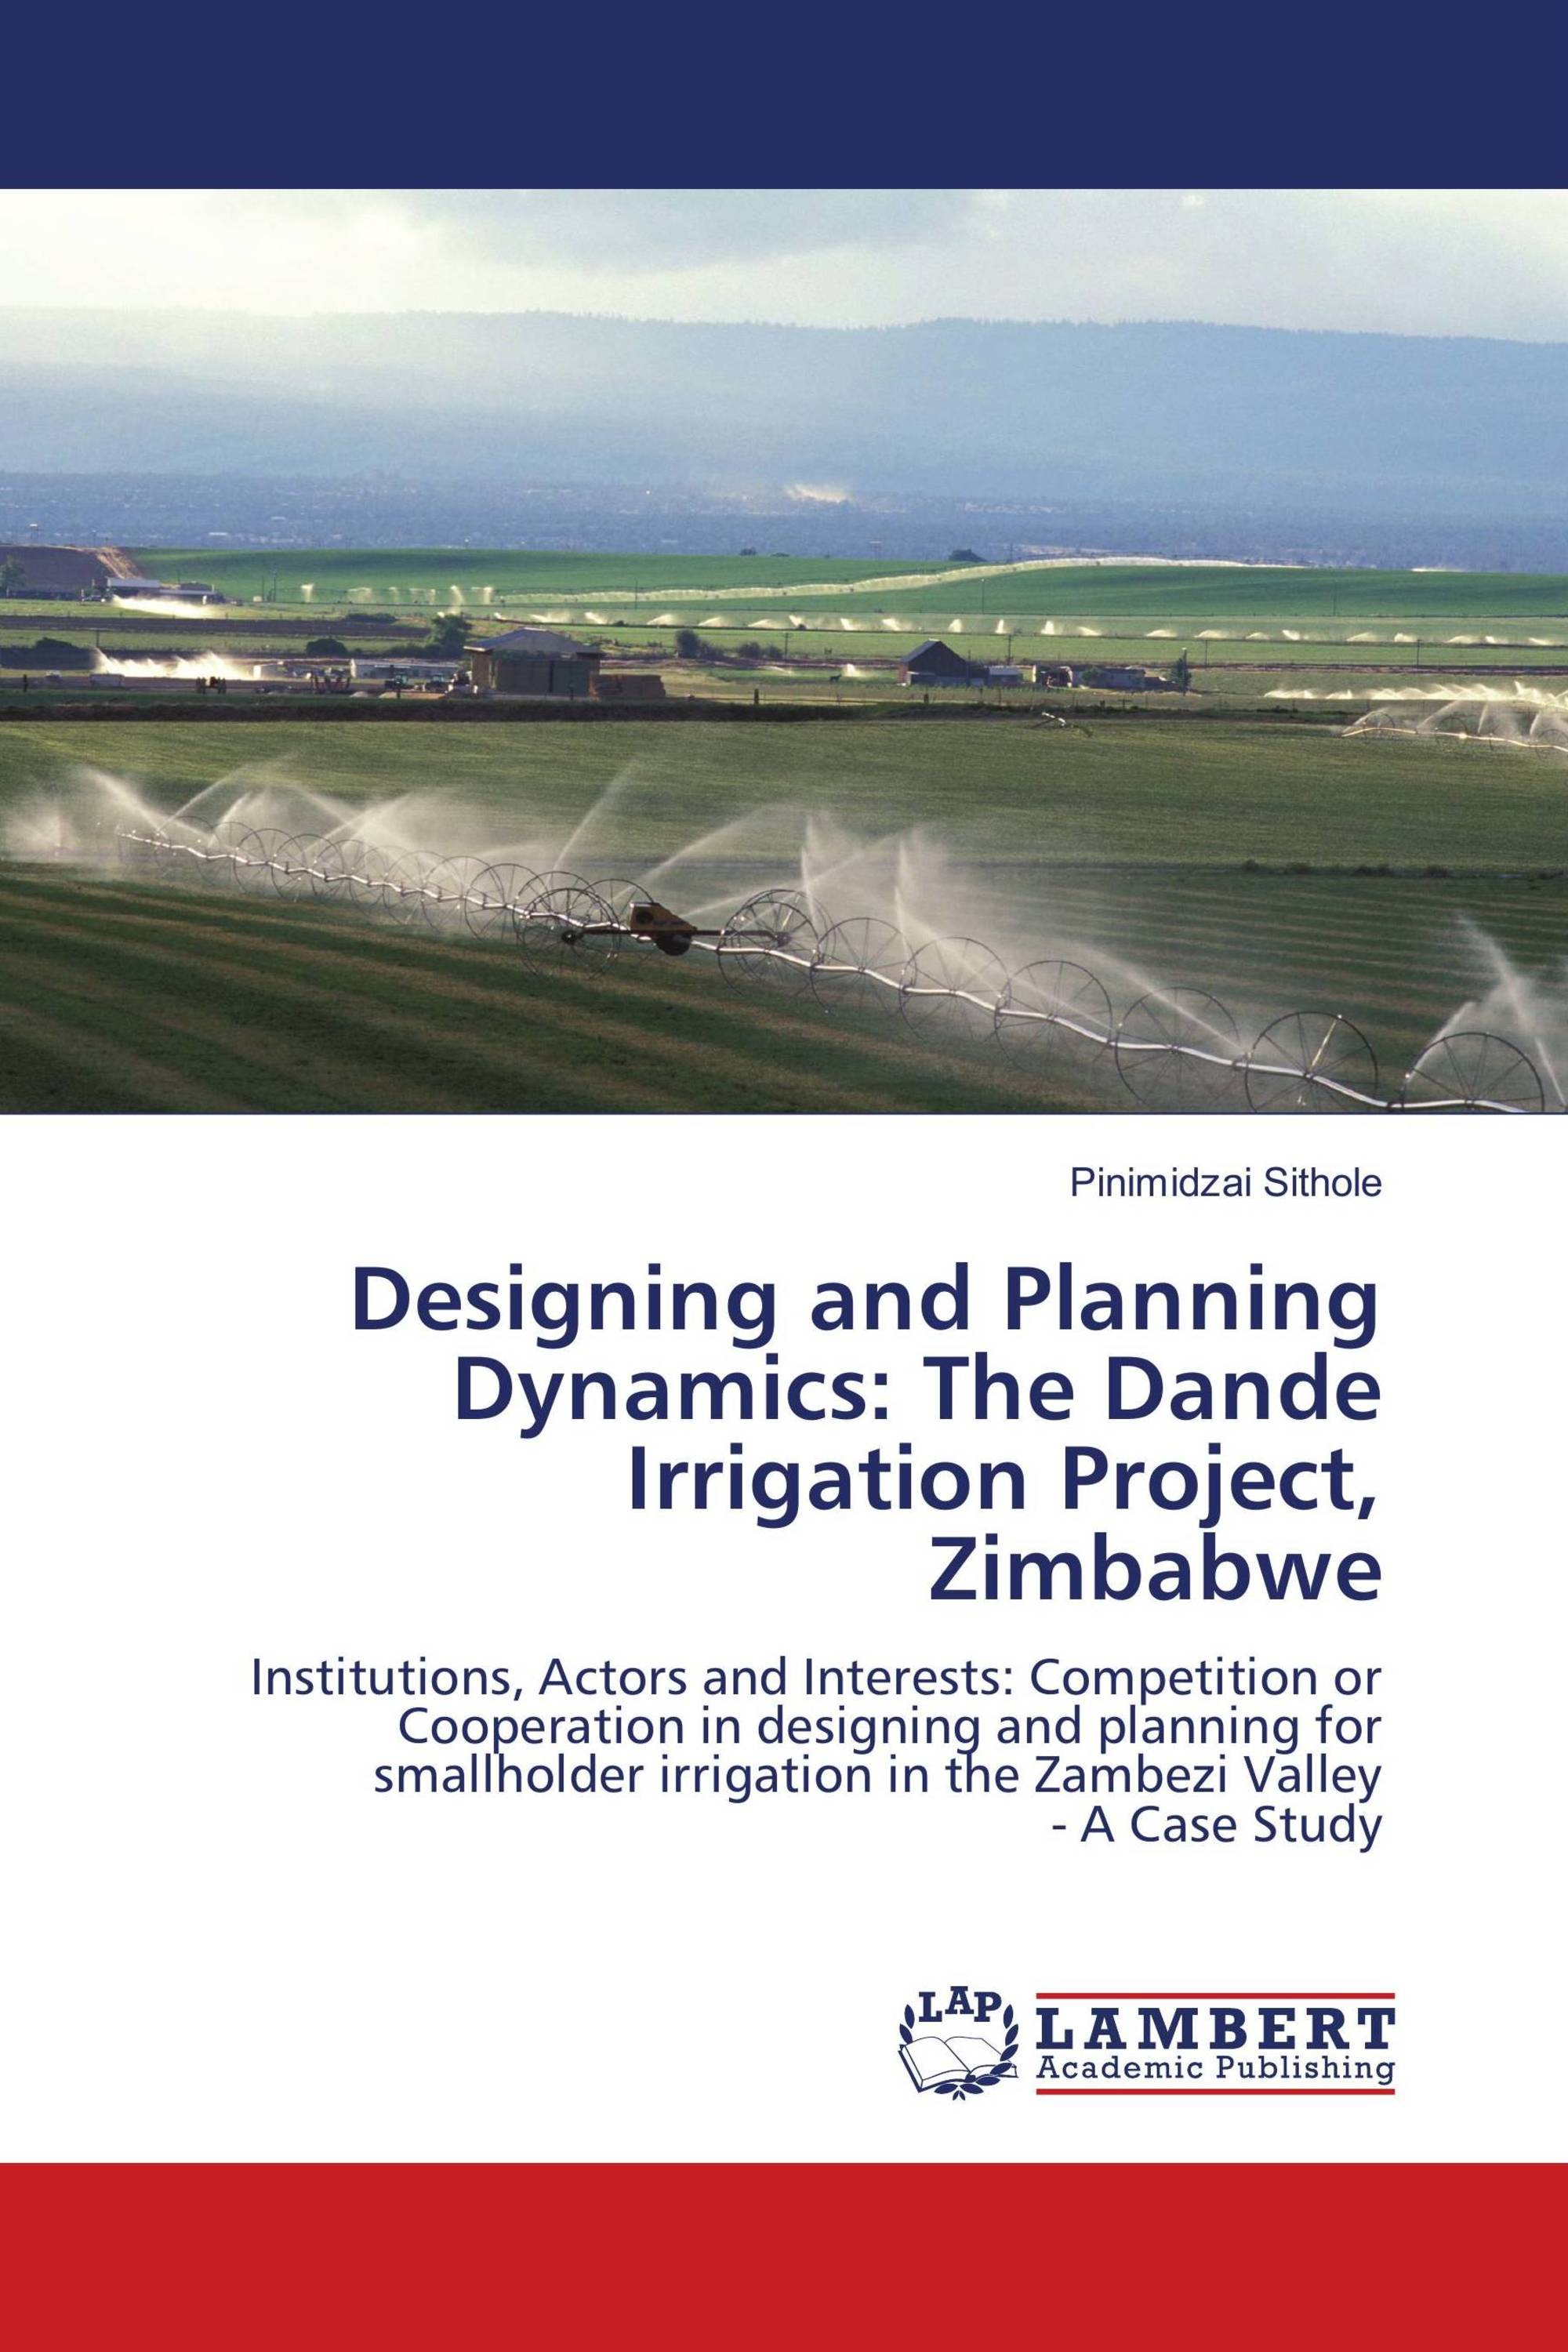 Designing and Planning Dynamics: The Dande Irrigation Project, Zimbabwe